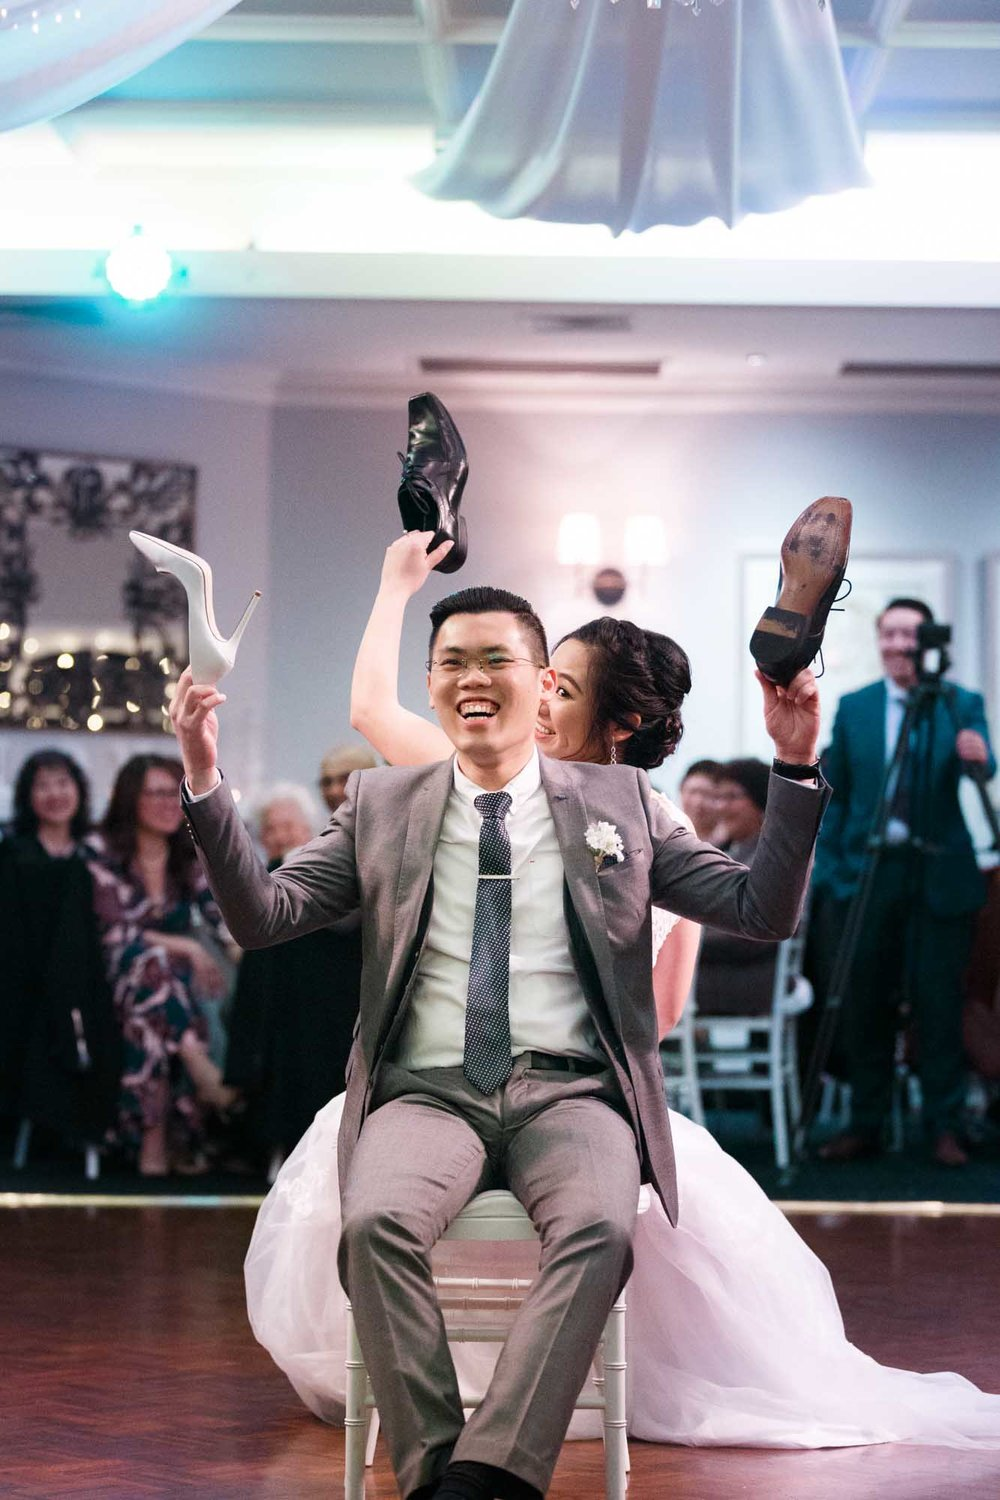 ©Sherman Tan Studio_Melbourne Wedding Photographer_Paul & Rowenia_05_Reception_521.jpg